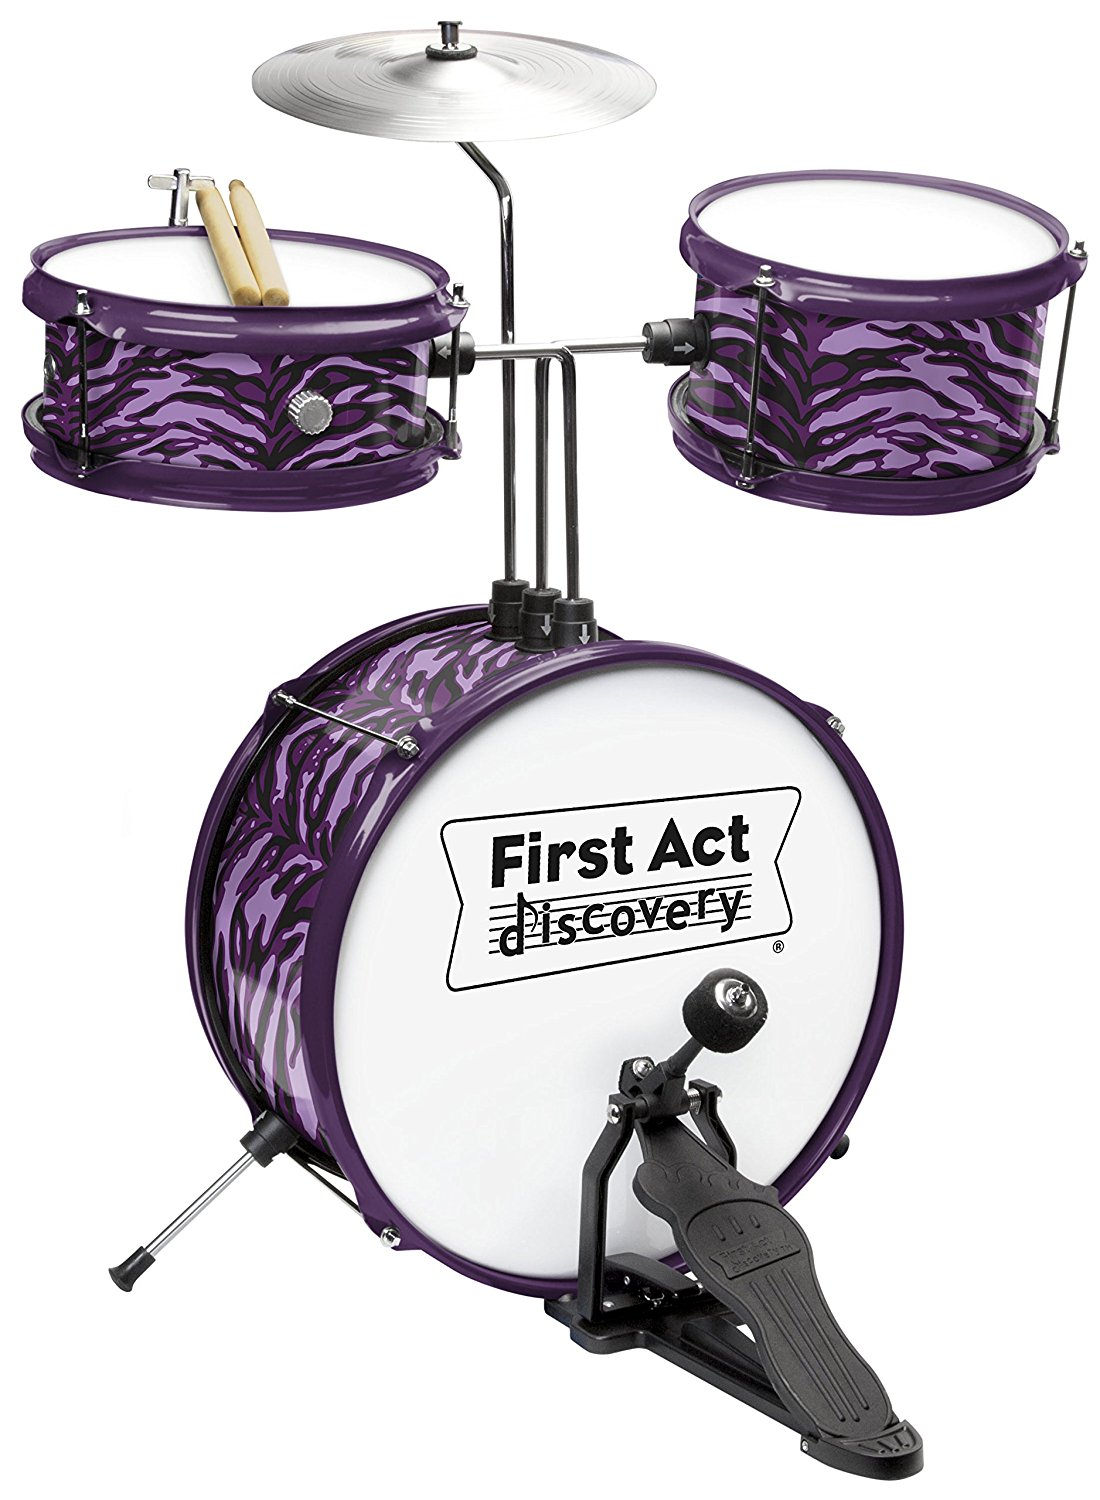 First Act Discovery Purple Zebra Designer Drum Set FD3711, Purple by FIRST ACT INC.